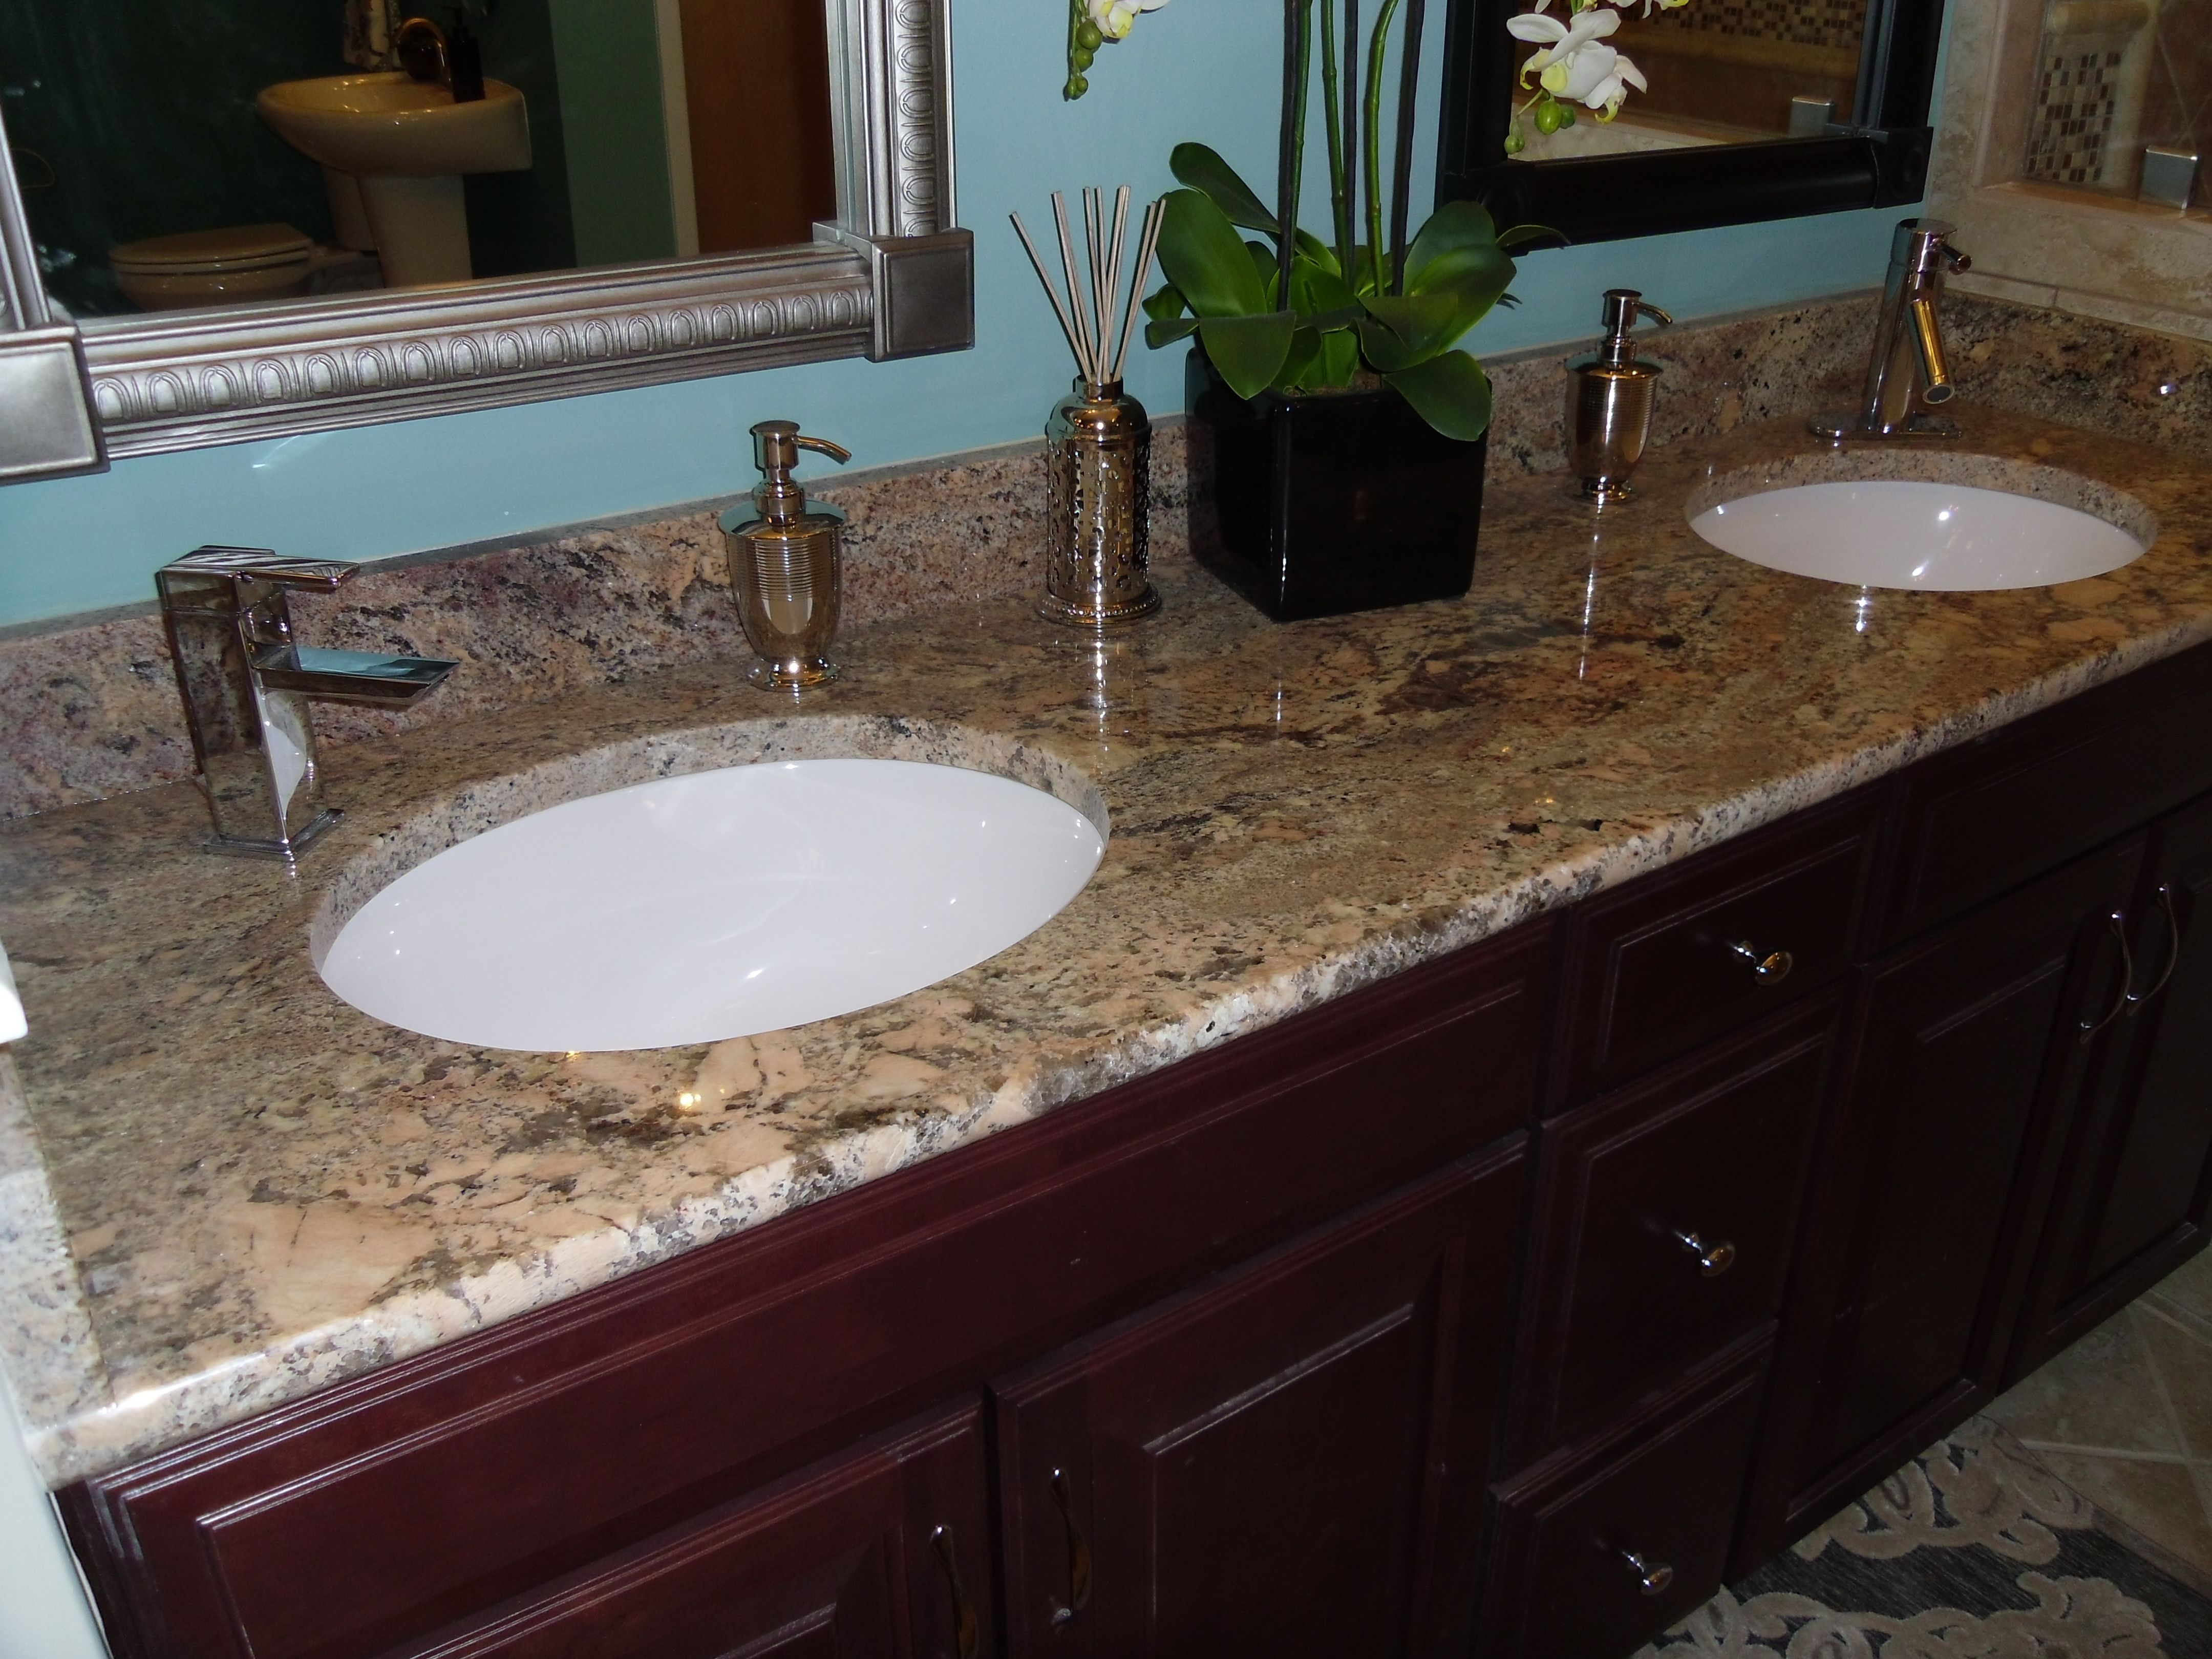 Crema Bordeaux for the bathroom Here they used white sinks Maybe cream toto bone or Kohler almond would go better Undermount sink looks nice